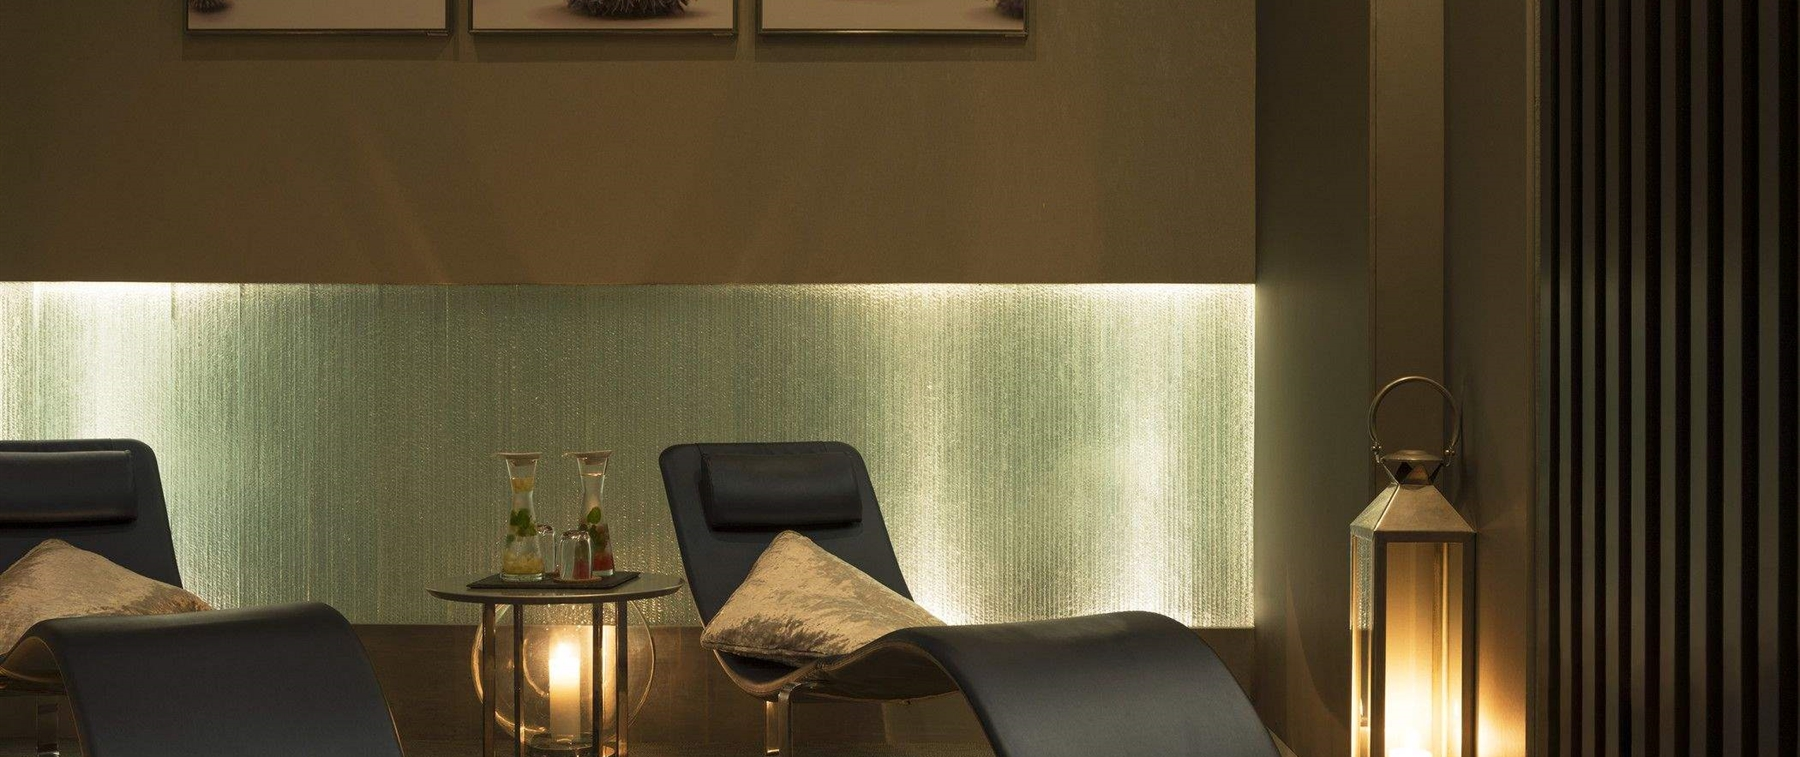 Contact Us - Heavenly Spa